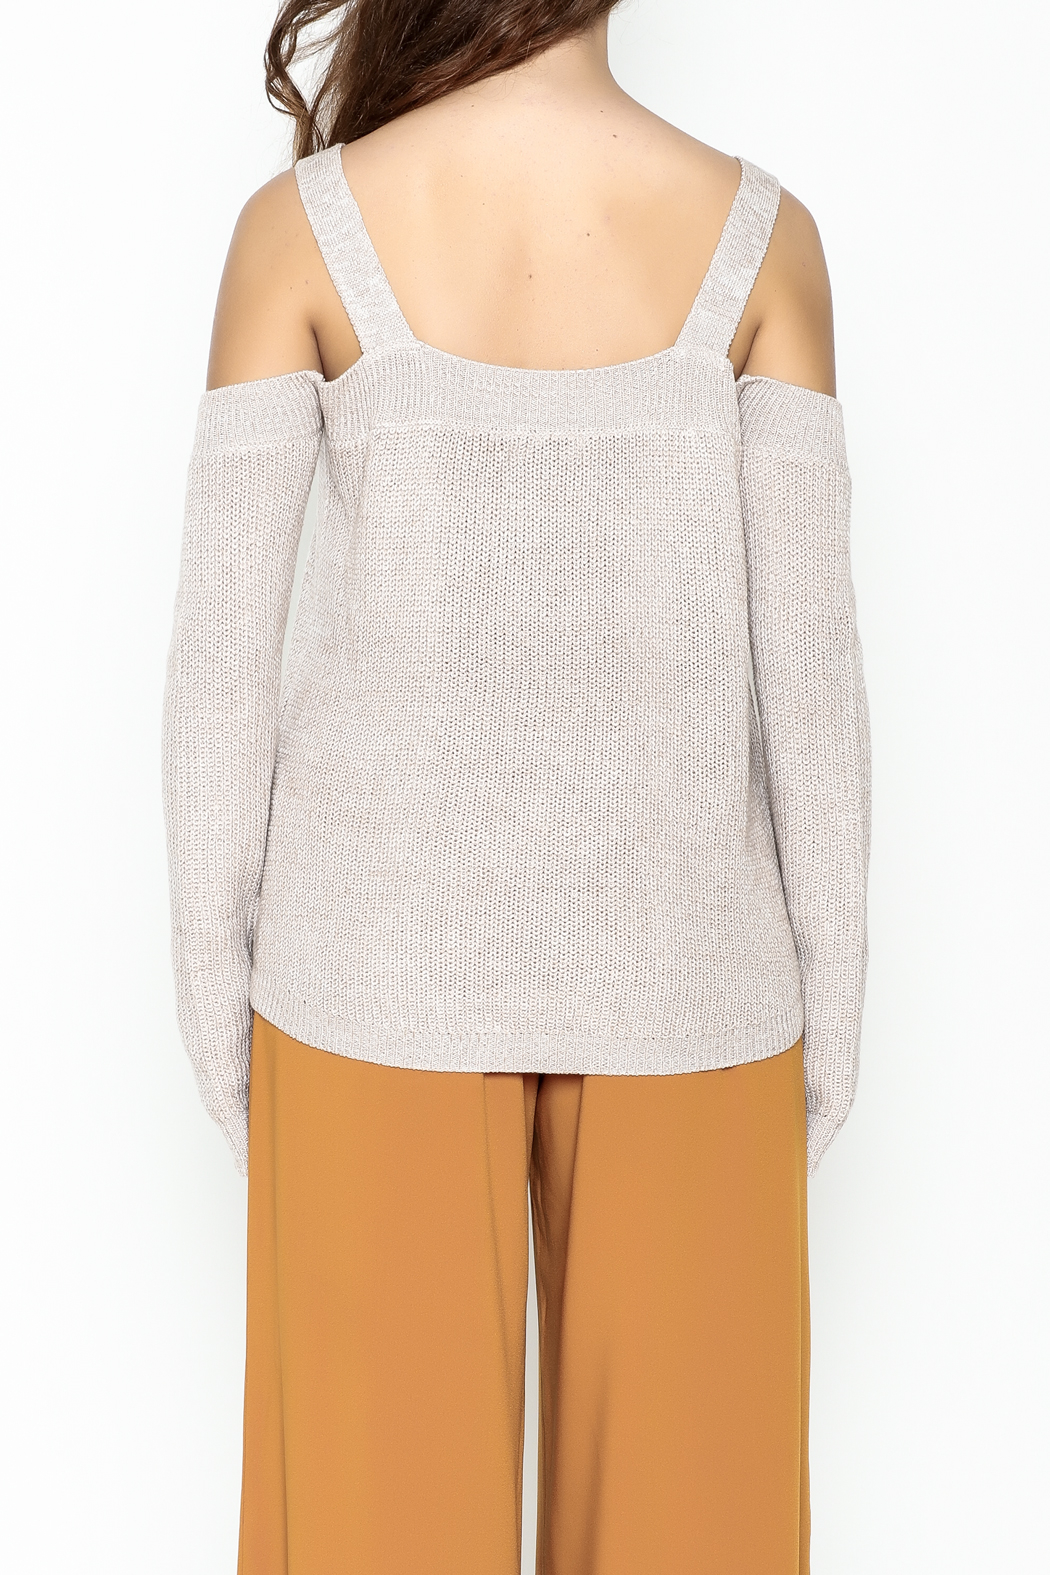 Fate Cold Shoulder Sweater - Back Cropped Image